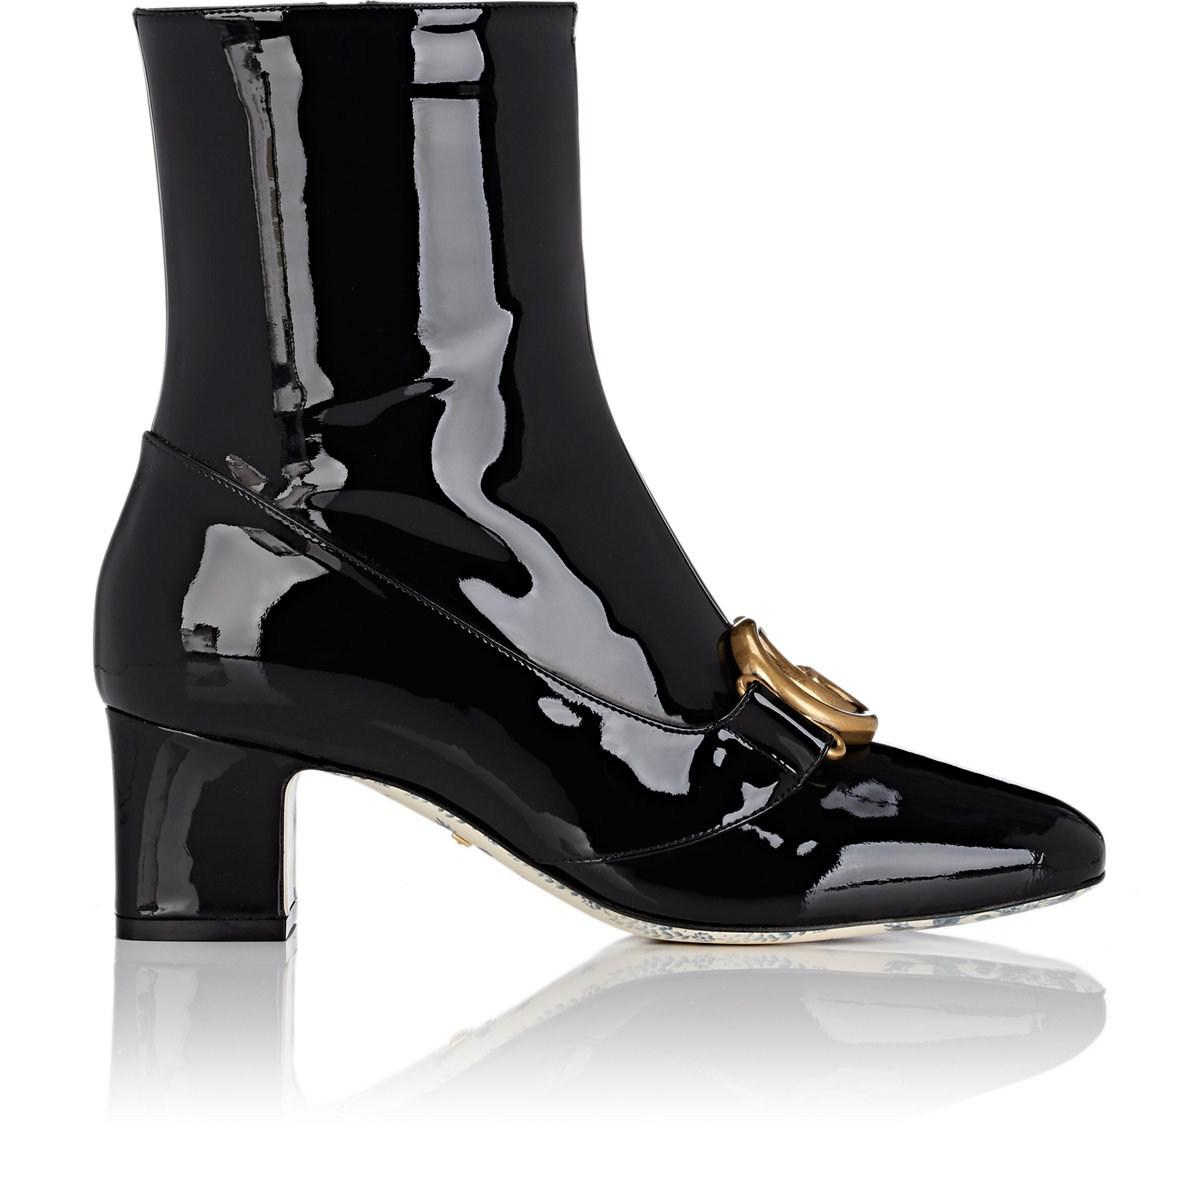 412681f687f Gucci Embellished Patent Leather Ankle Boots in Black - Save 28% - Lyst